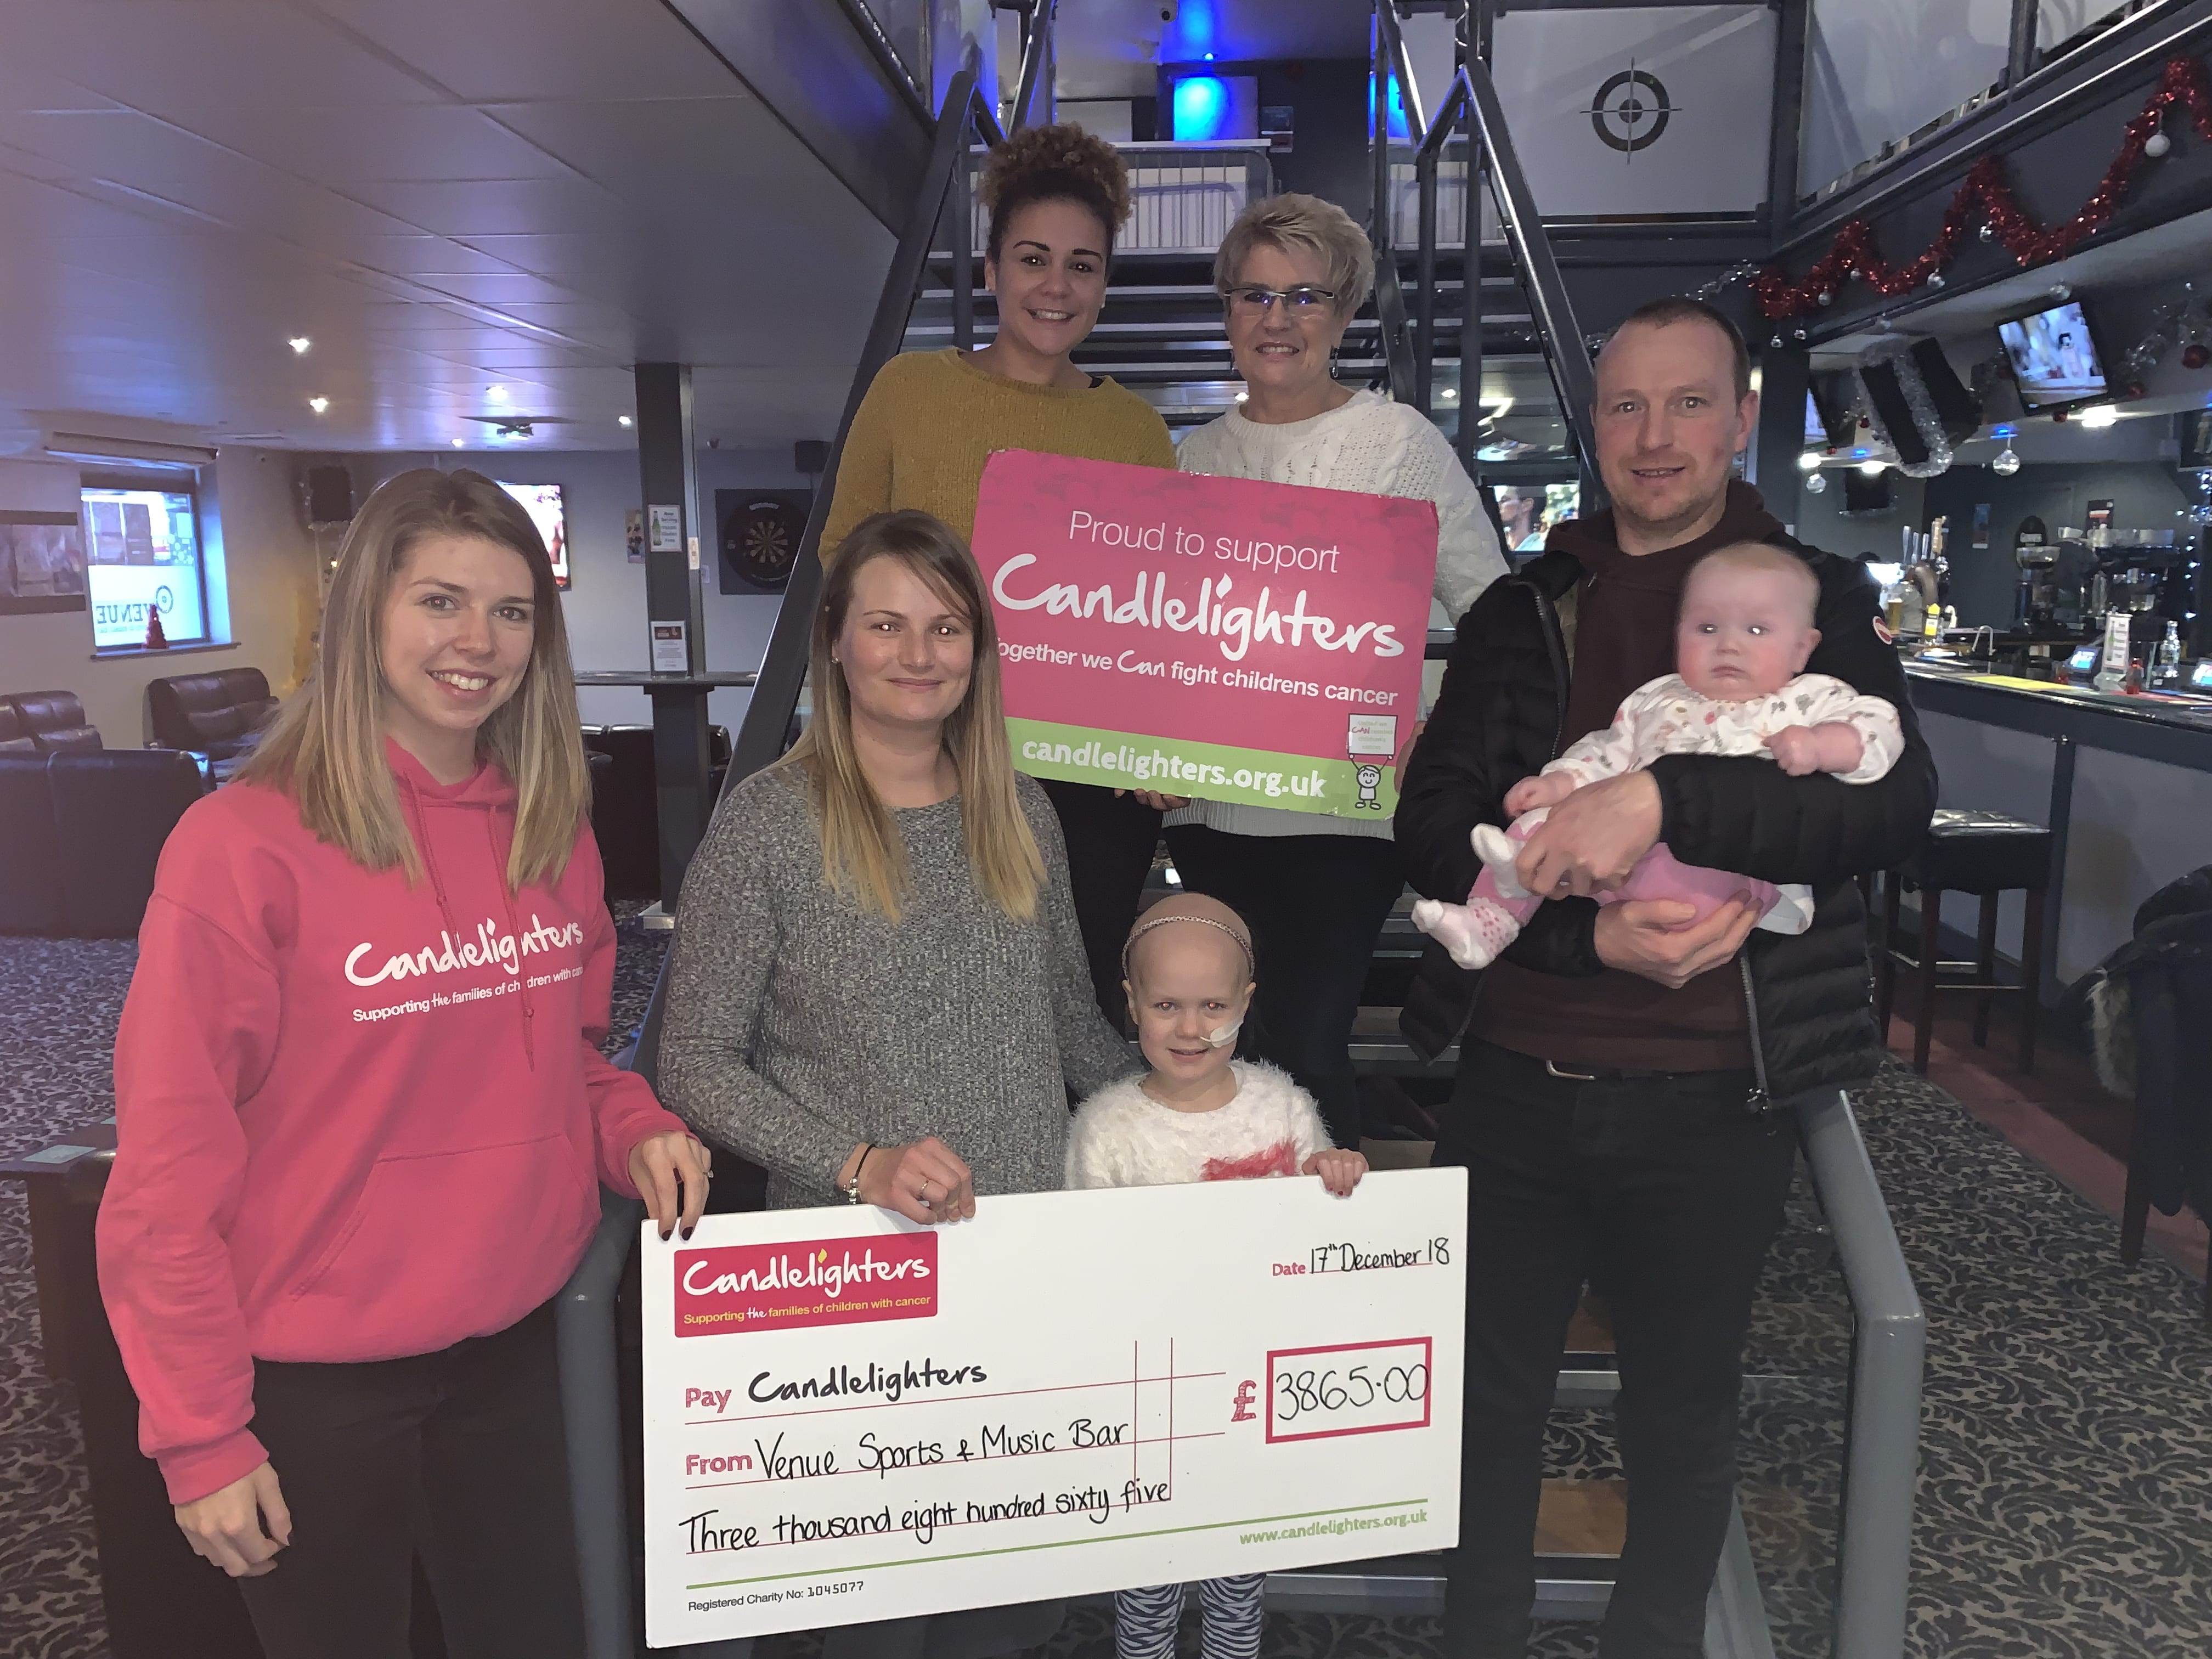 Venue Sports and Music Bar Raise £4915 for Candlelighters!